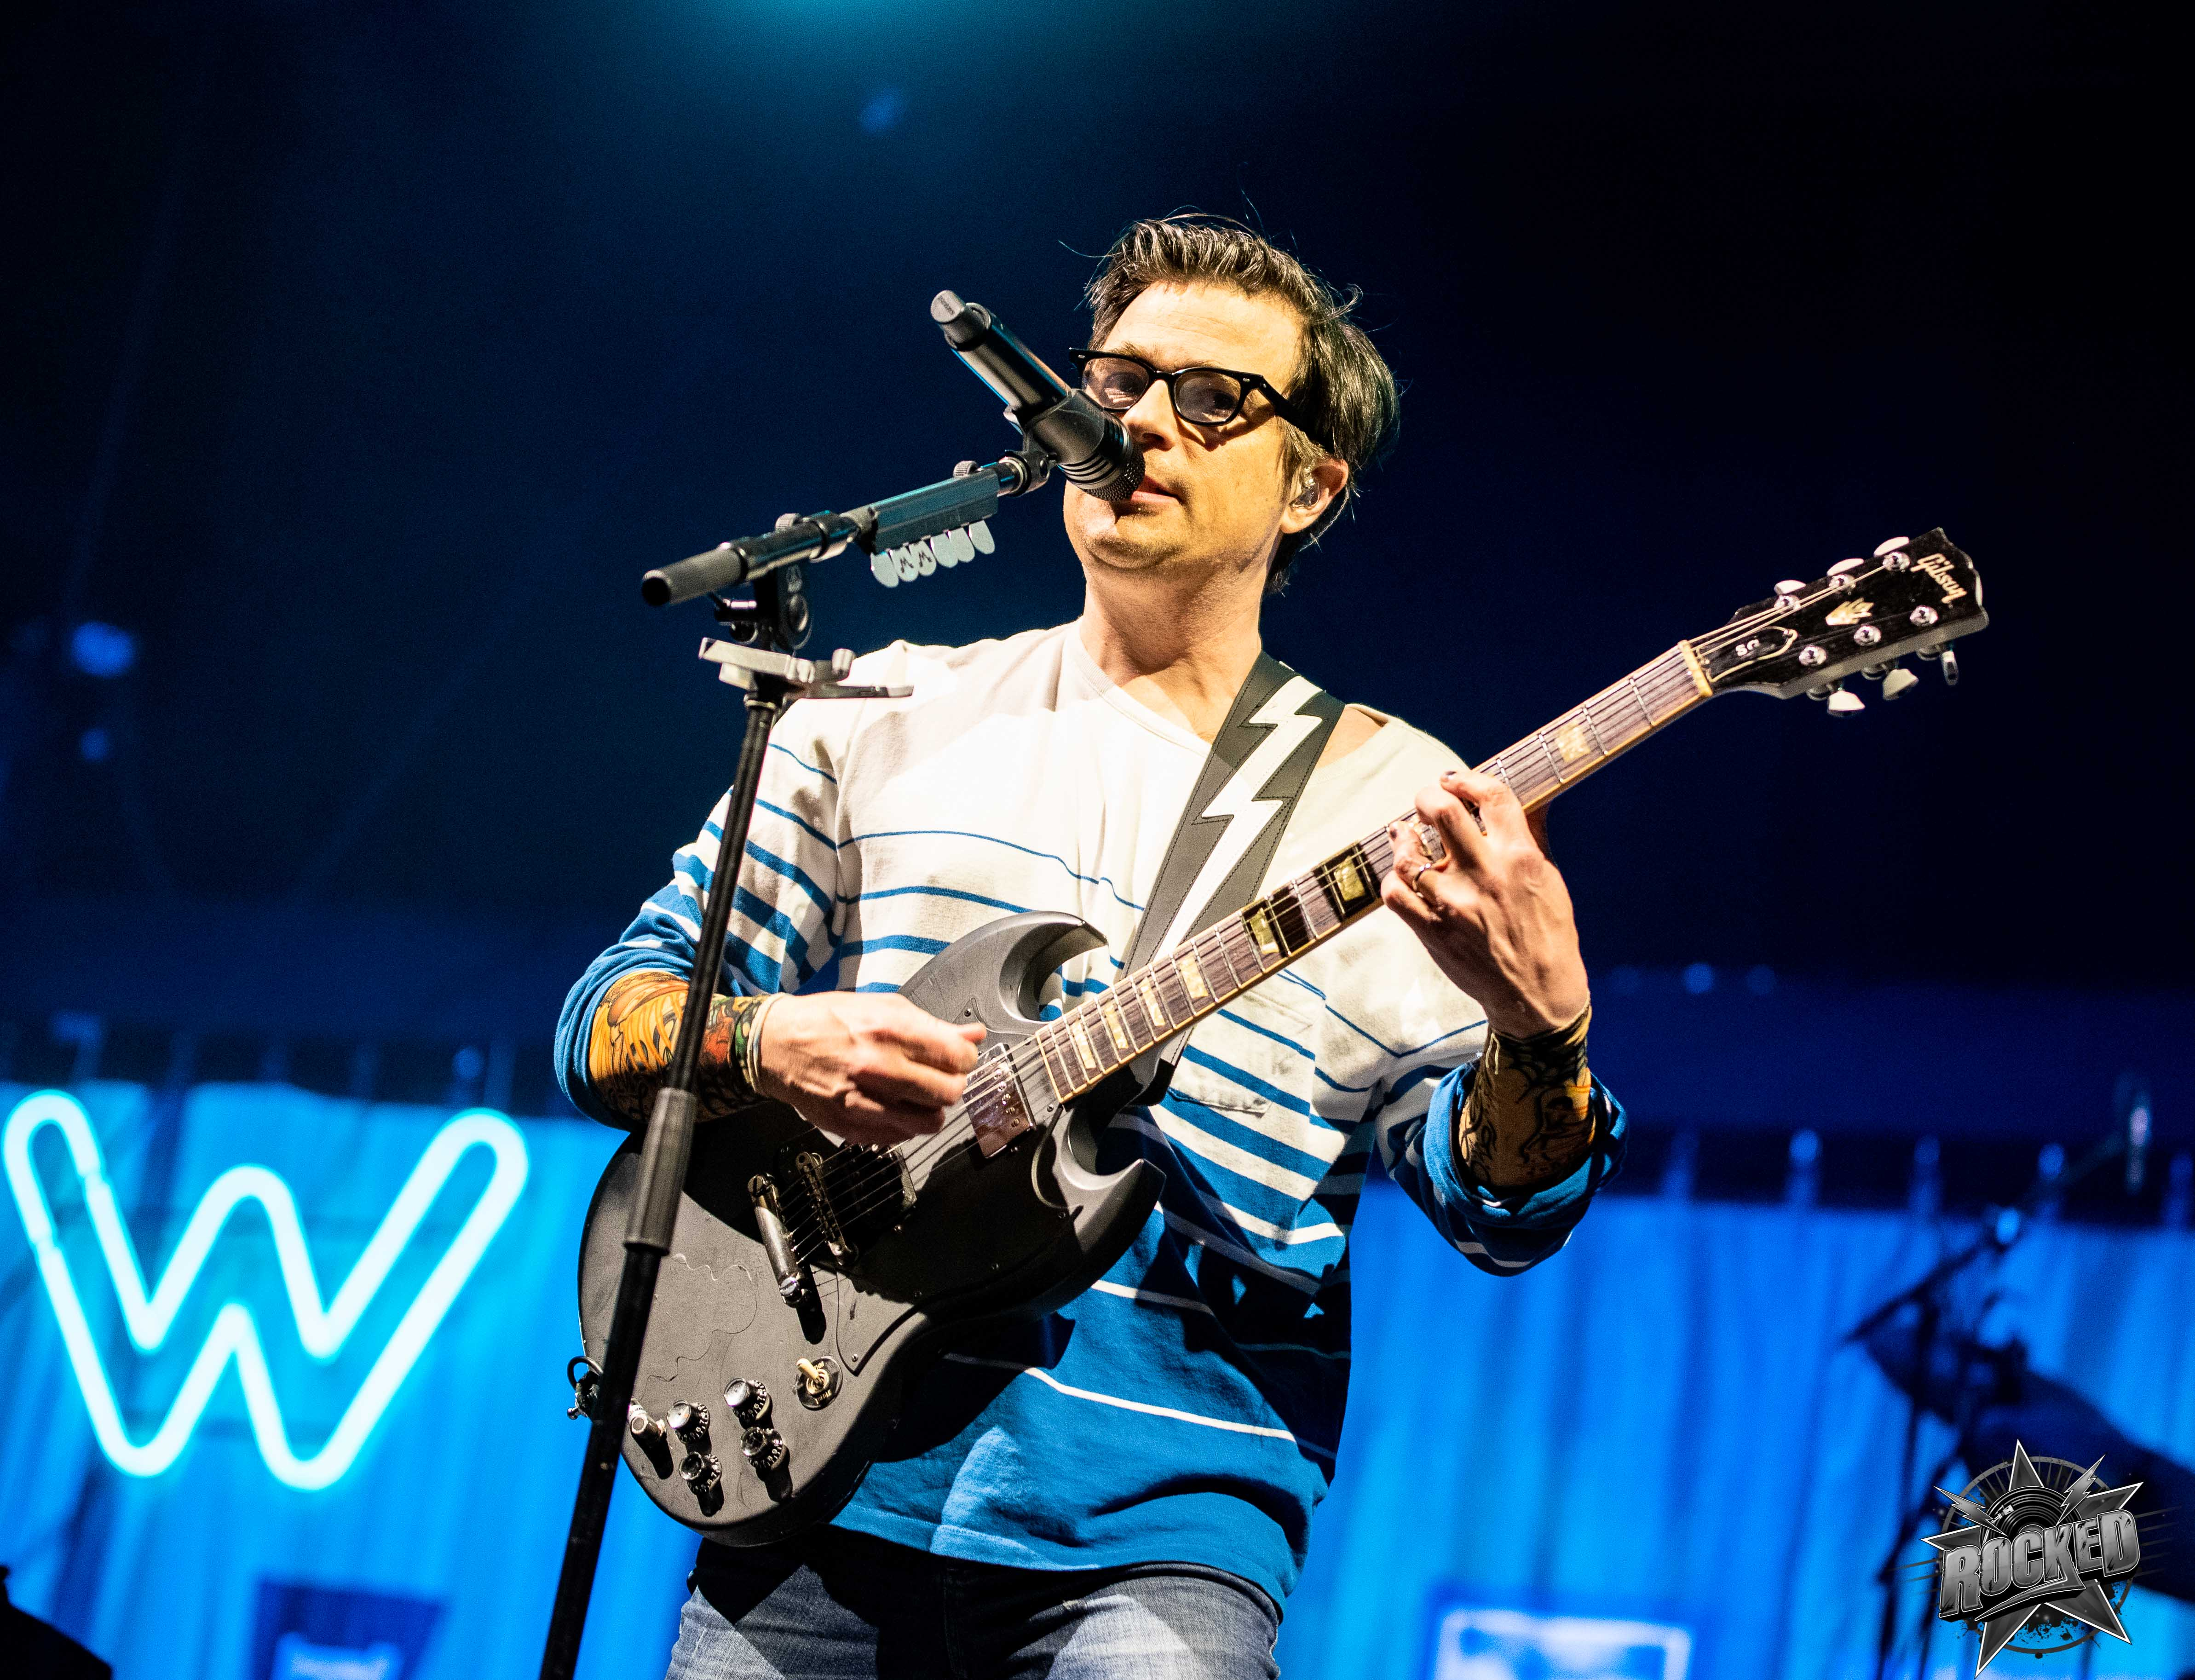 Weezer Teal Archives - Rocked